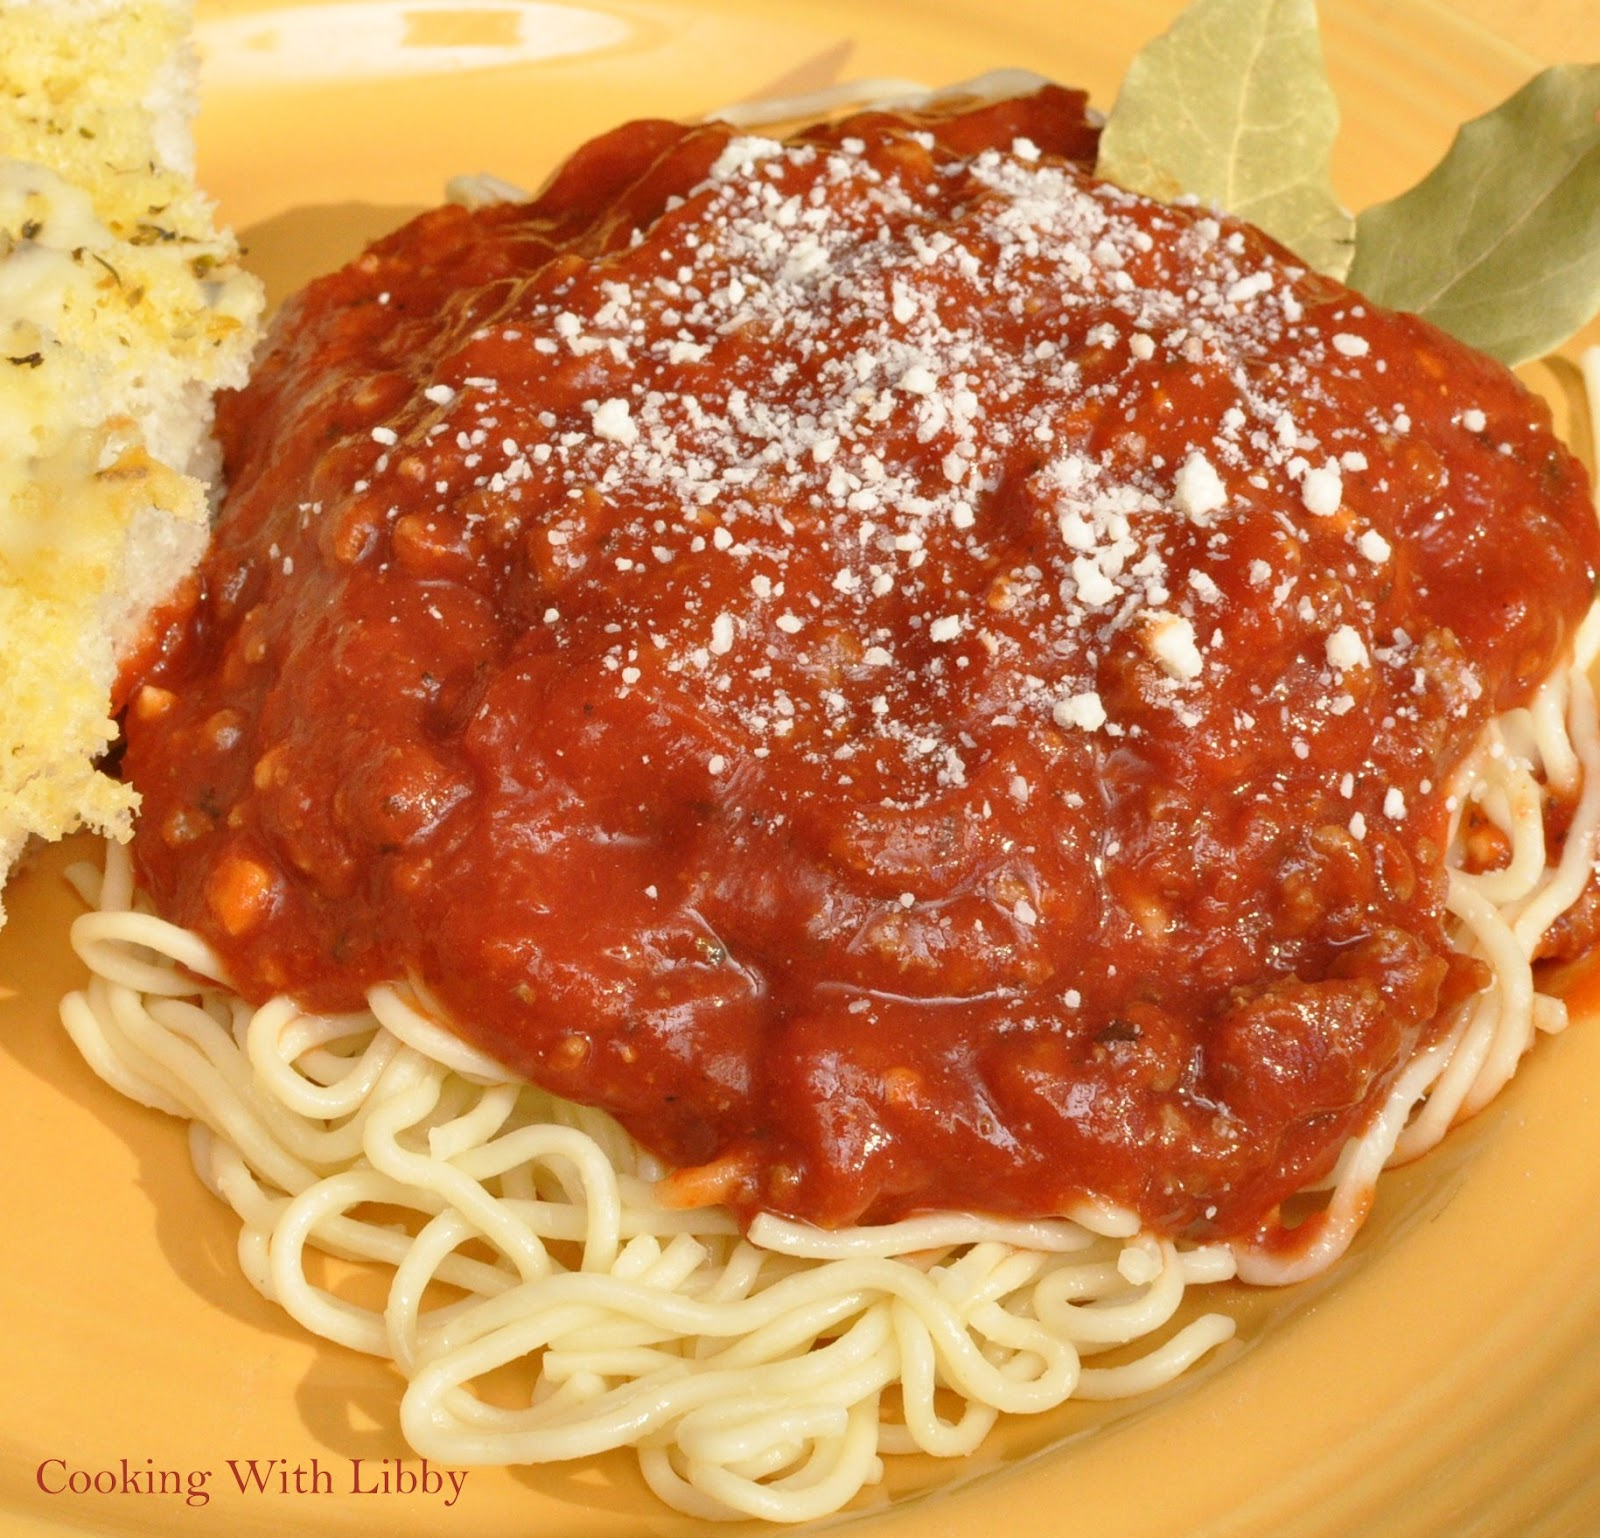 Cooking With Libby: Slow Cooker Spaghetti Sauce